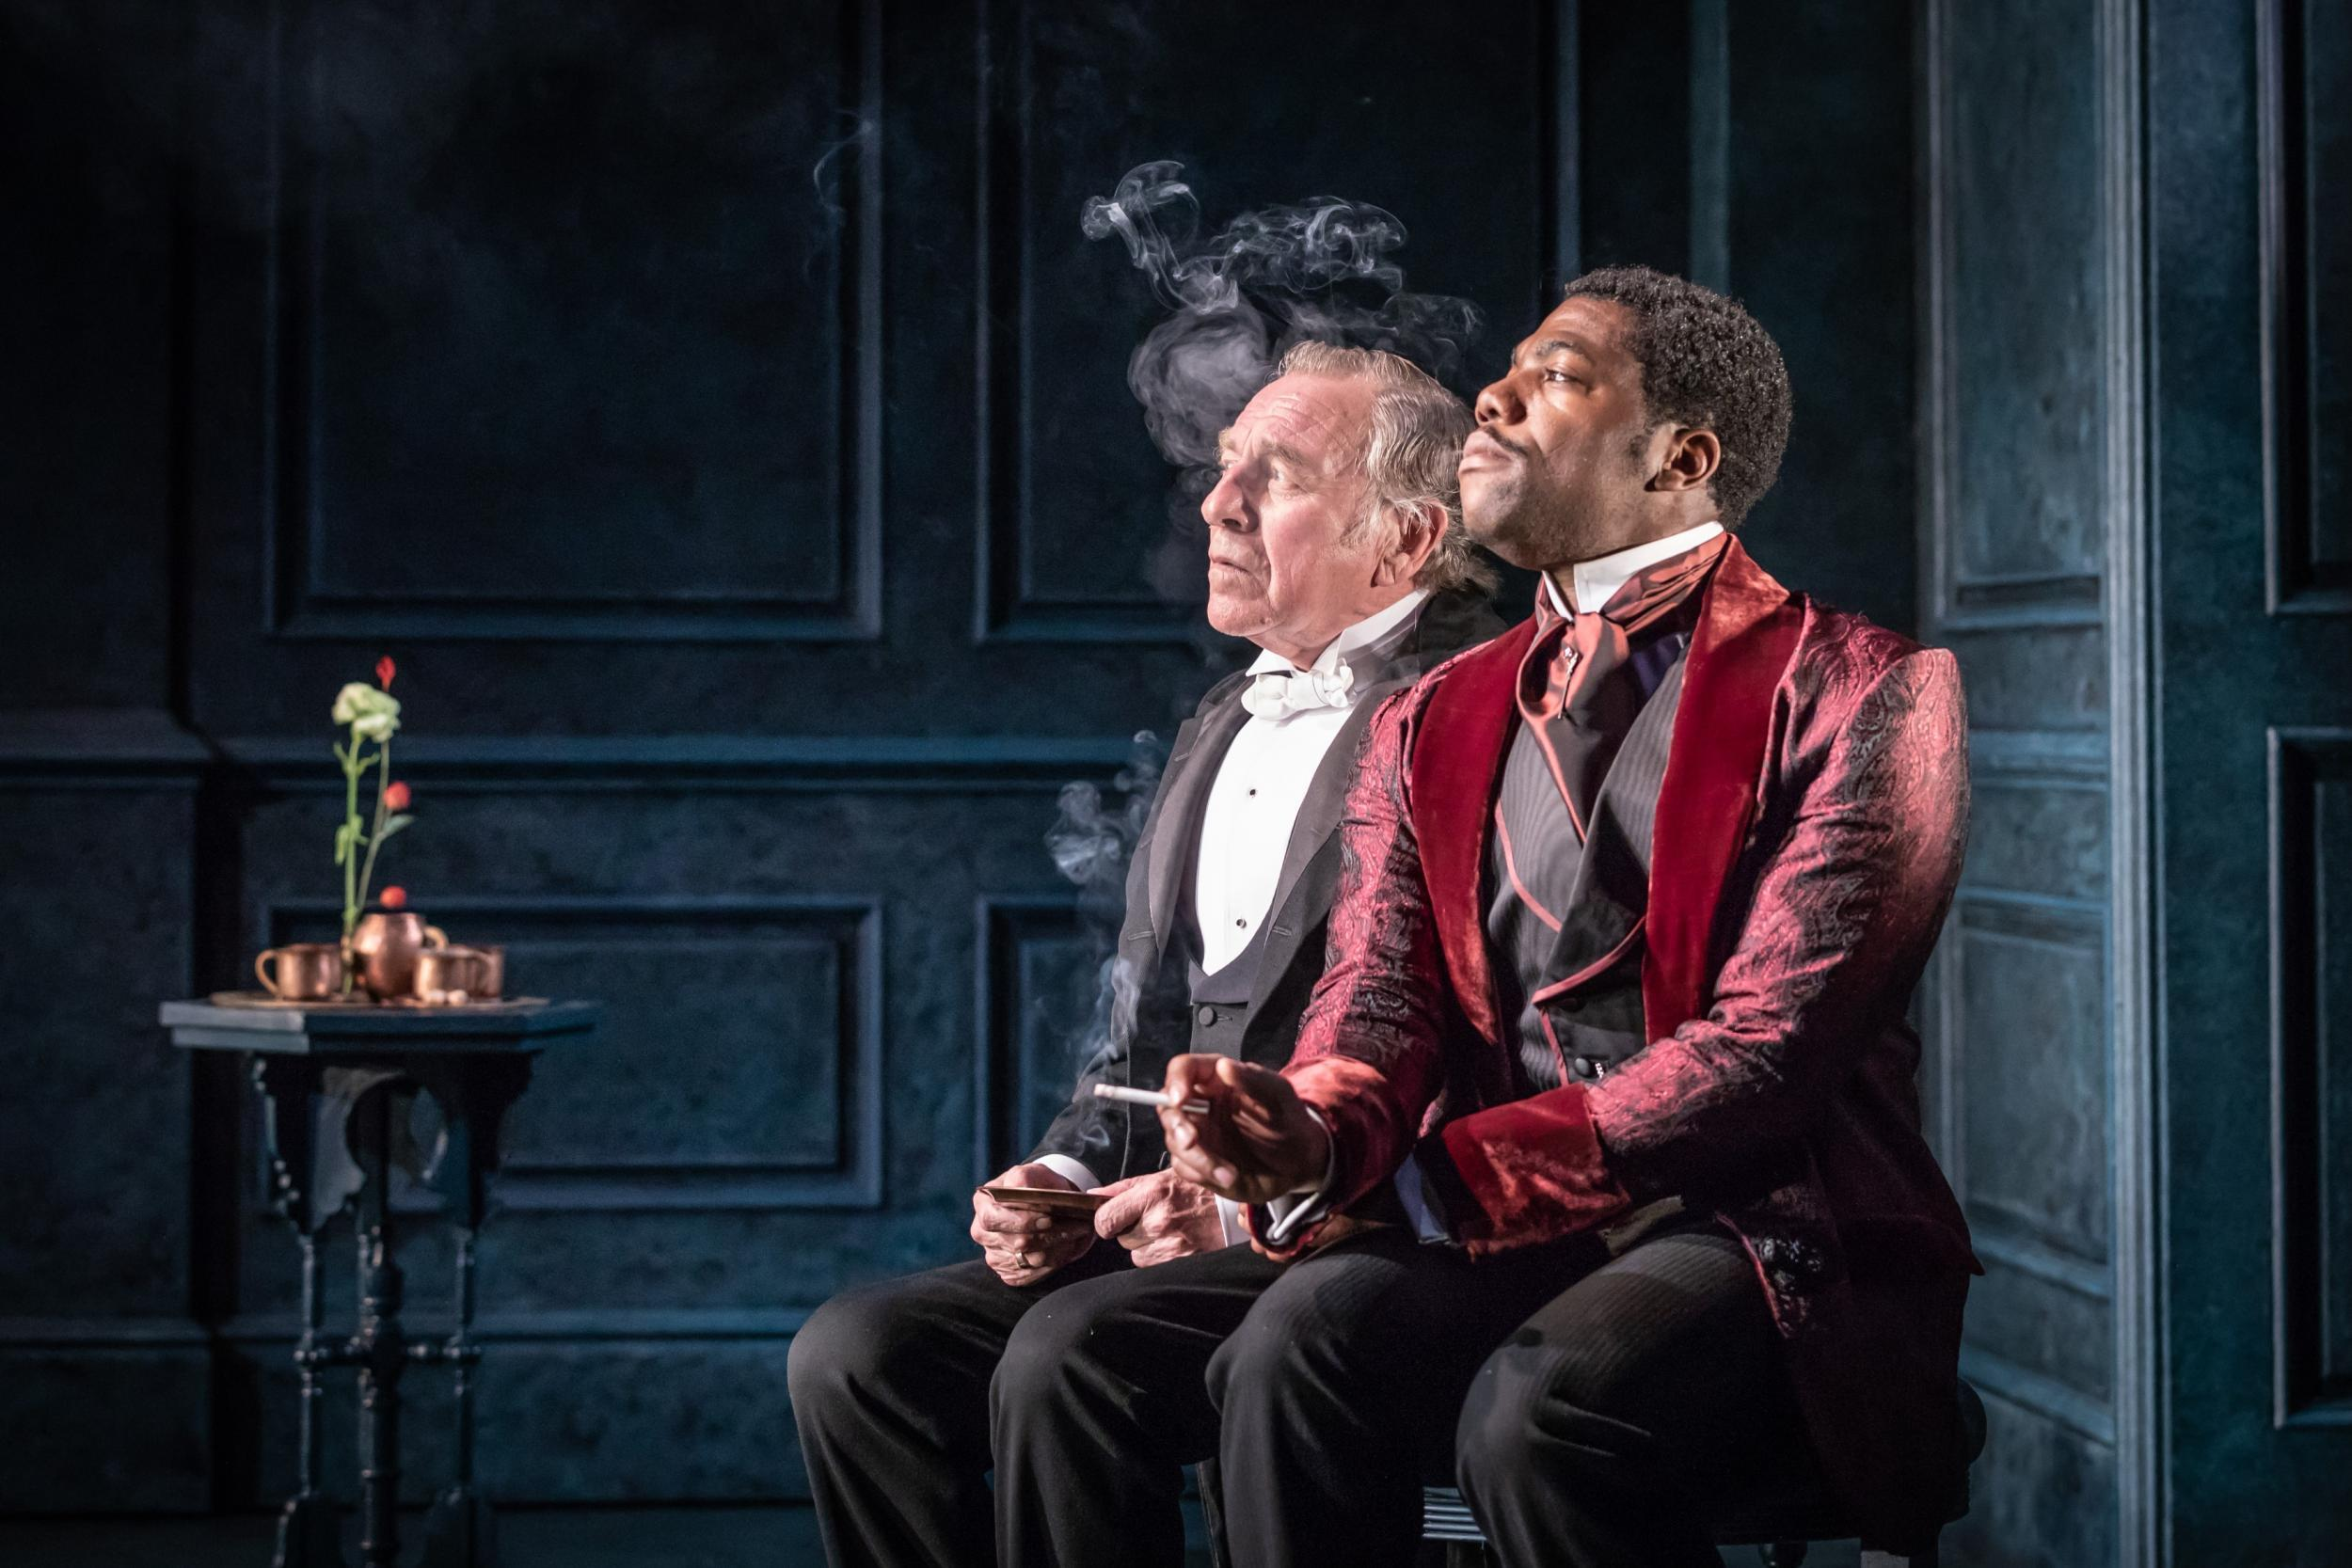 The Importance Of Being Earnest Vaudeville Theatre Manages To Be  The Importance Of Being Earnest Vaudeville Theatre Manages To Be  Subversive And Conformist At The Same Time  The Independent